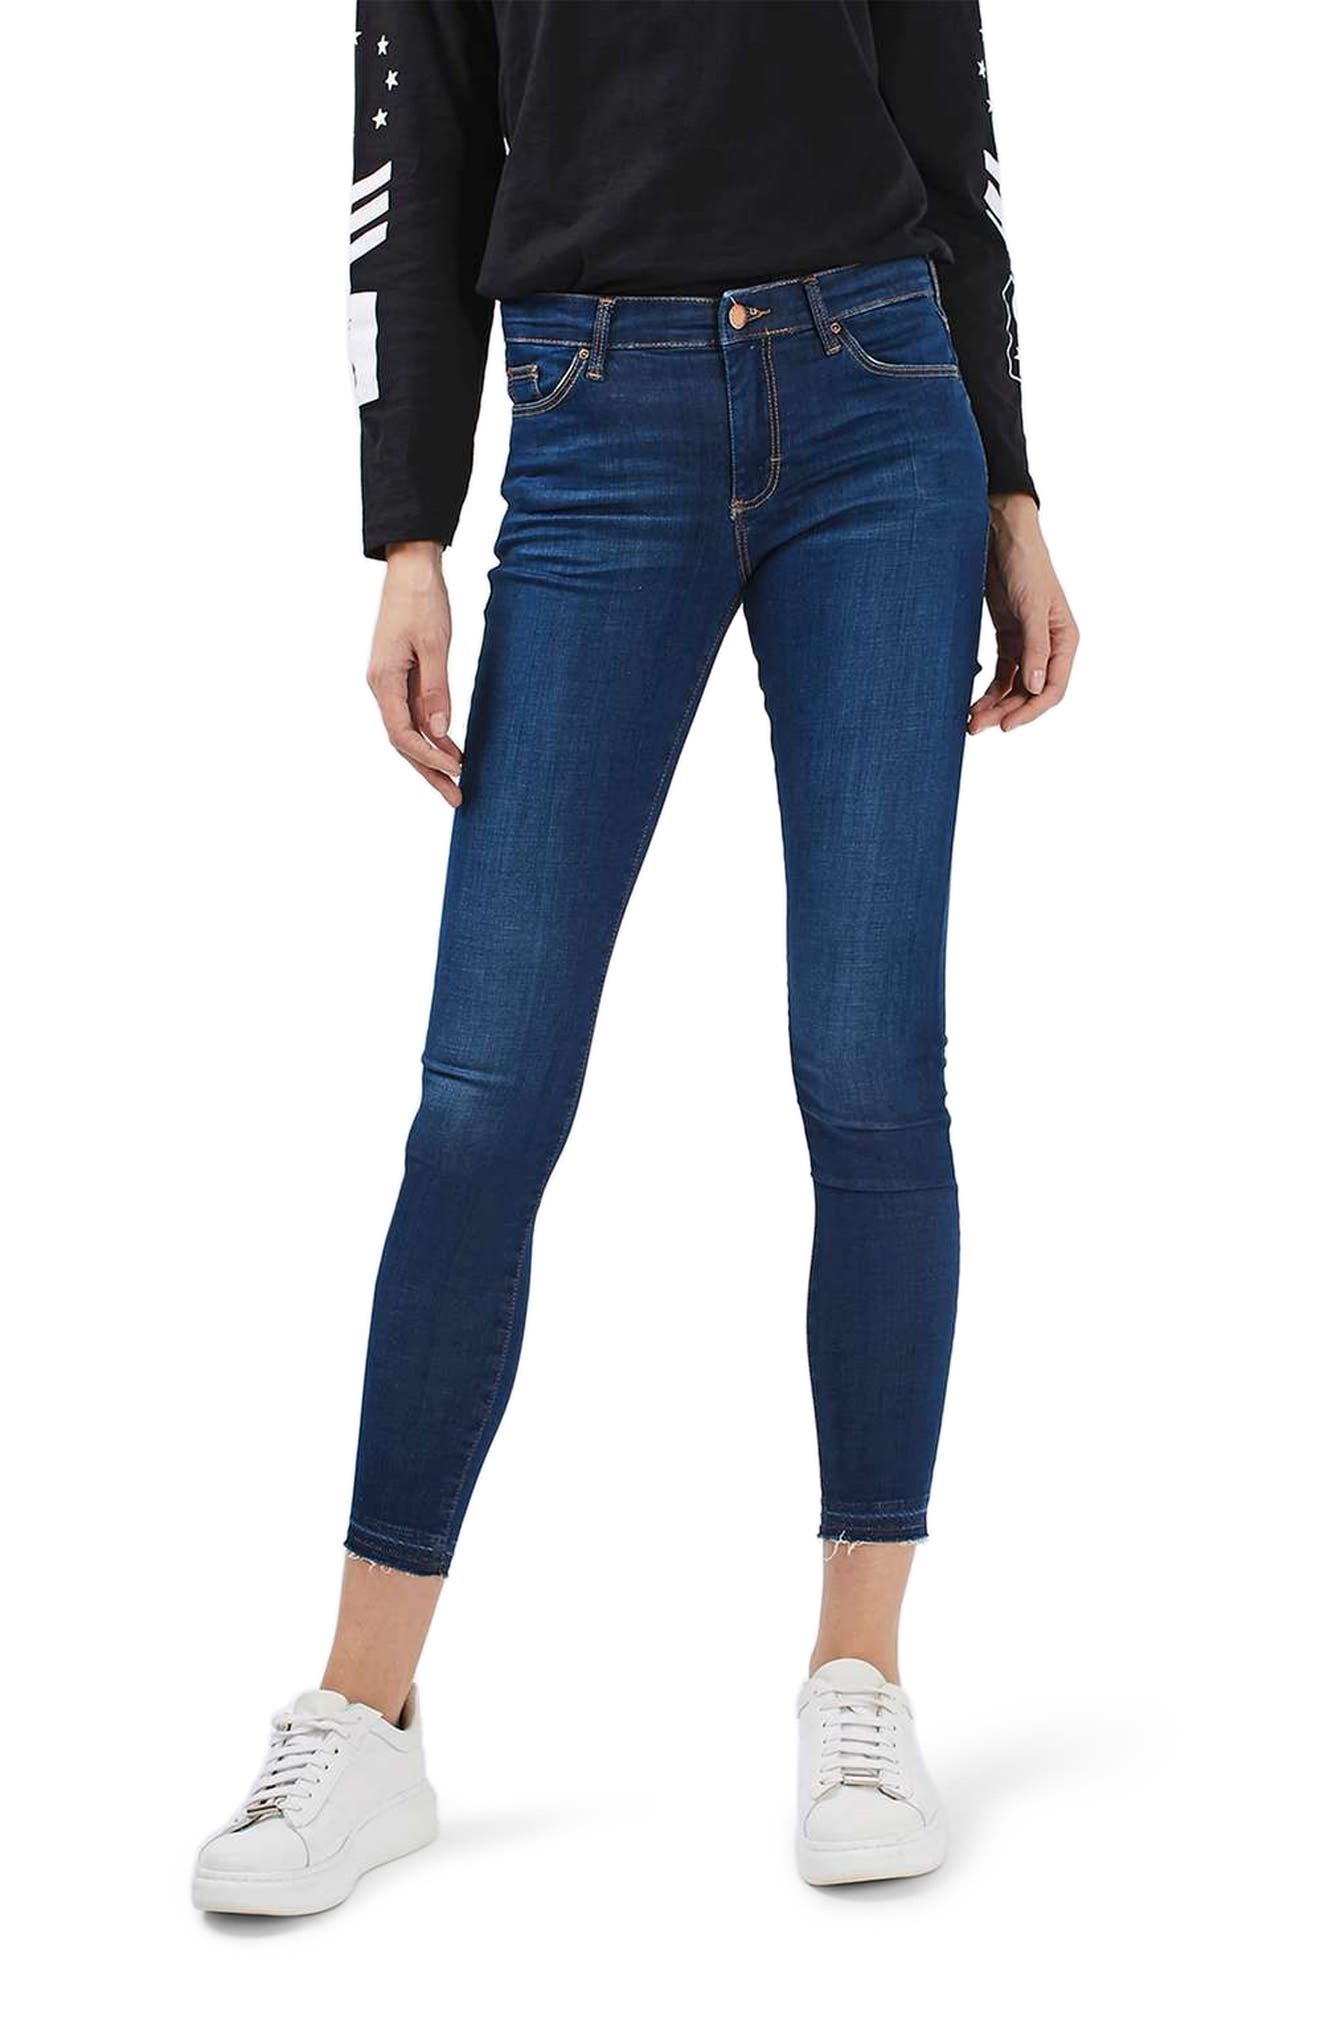 Leigh Released Hem Skinny Jeans,                             Main thumbnail 1, color,                             Indigo